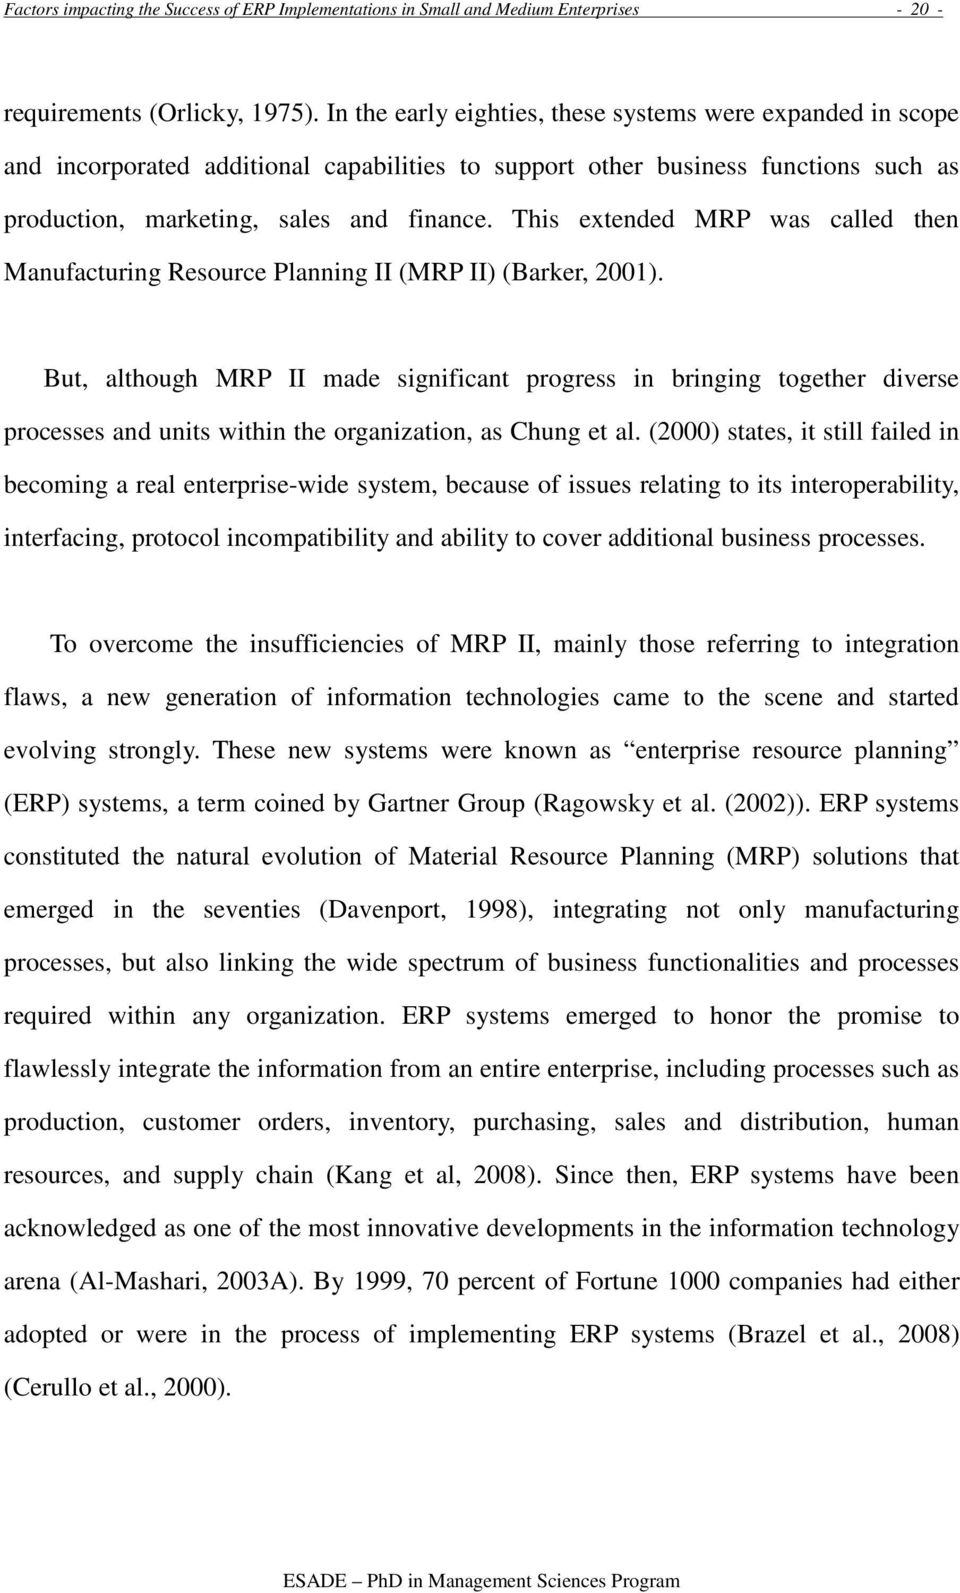 This extended MRP was called then Manufacturing Resource Planning II (MRP II) (Barker, 2001).